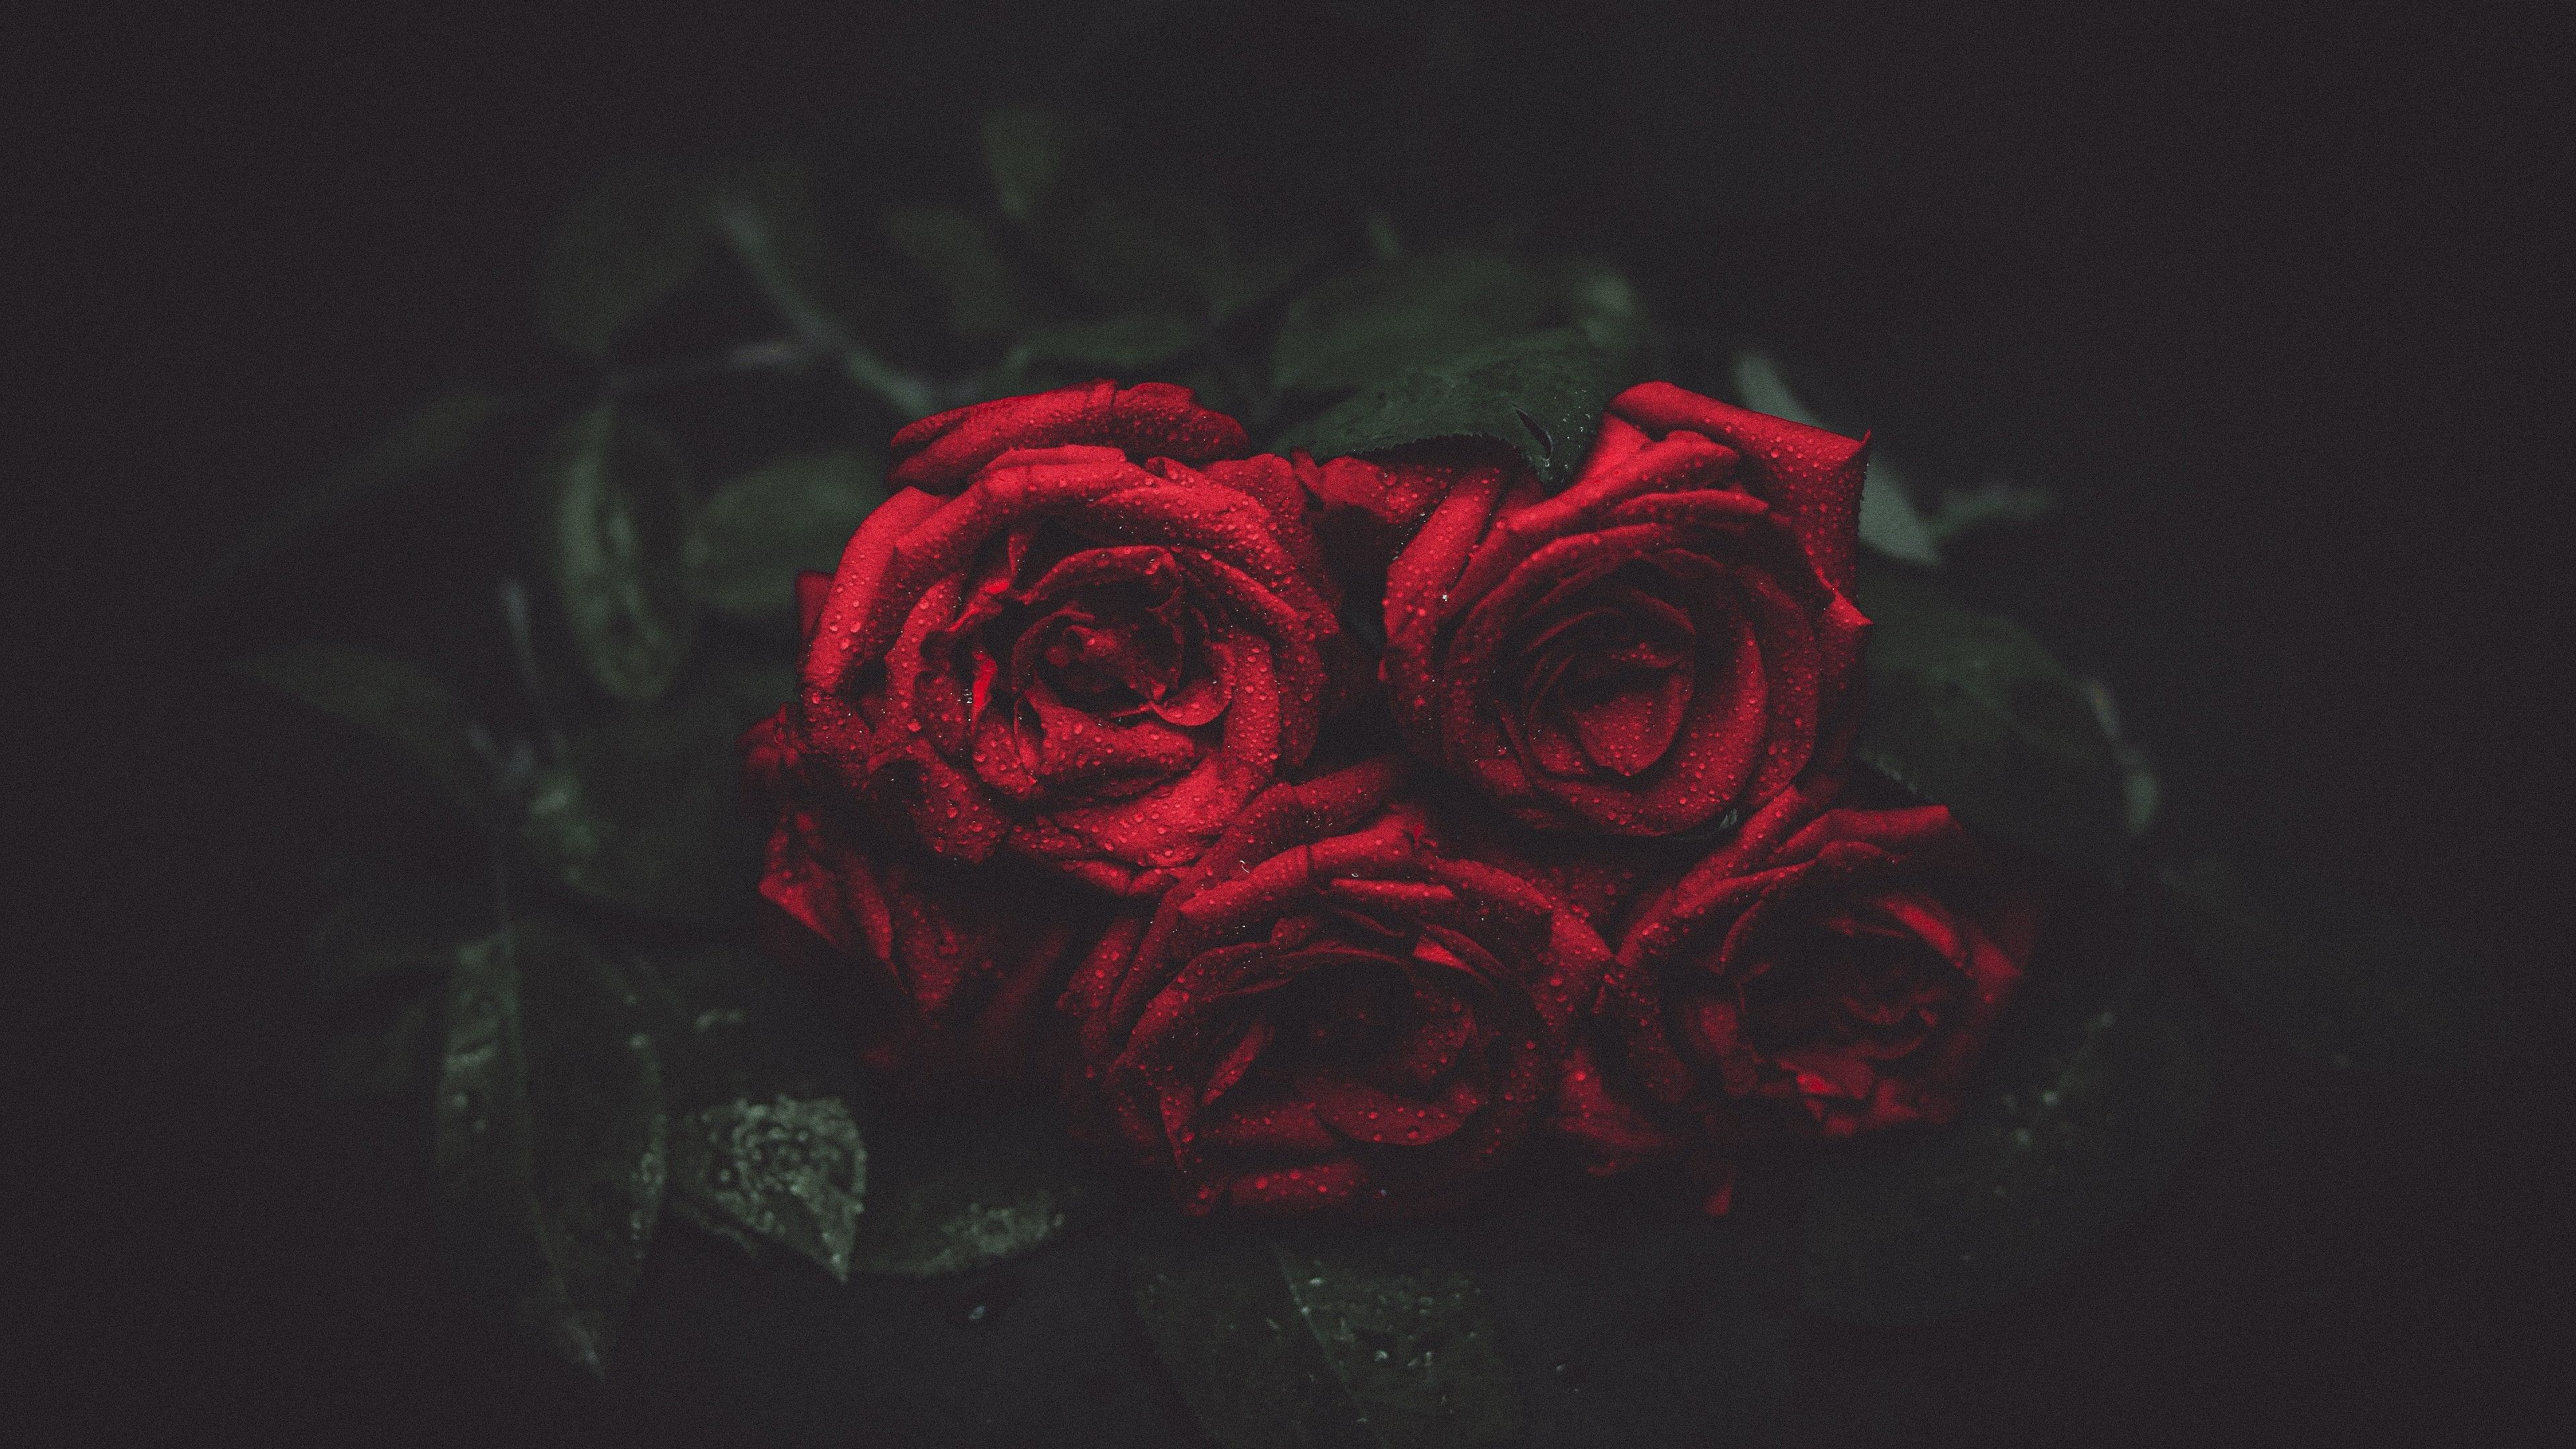 Black And Red Rose Wallpapers On Wallpaperdog